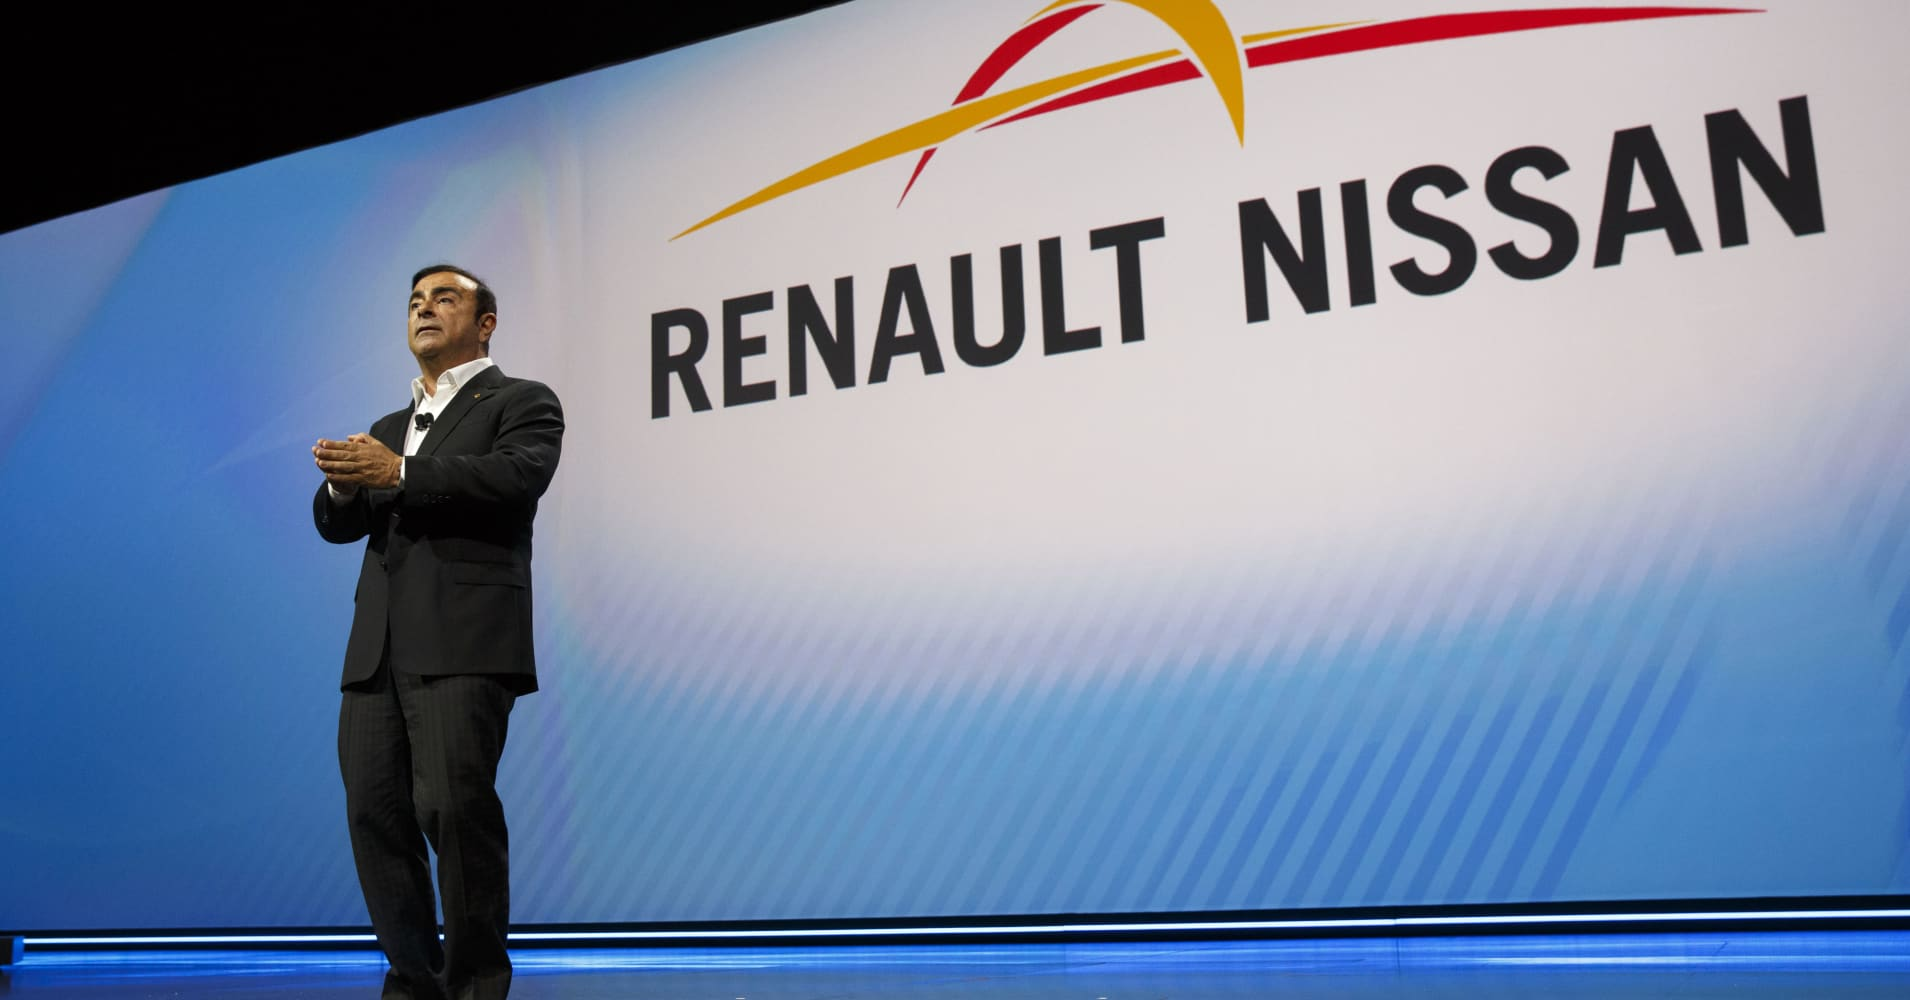 Paris informs Tokyo it wants Renault and Nissan to integrate